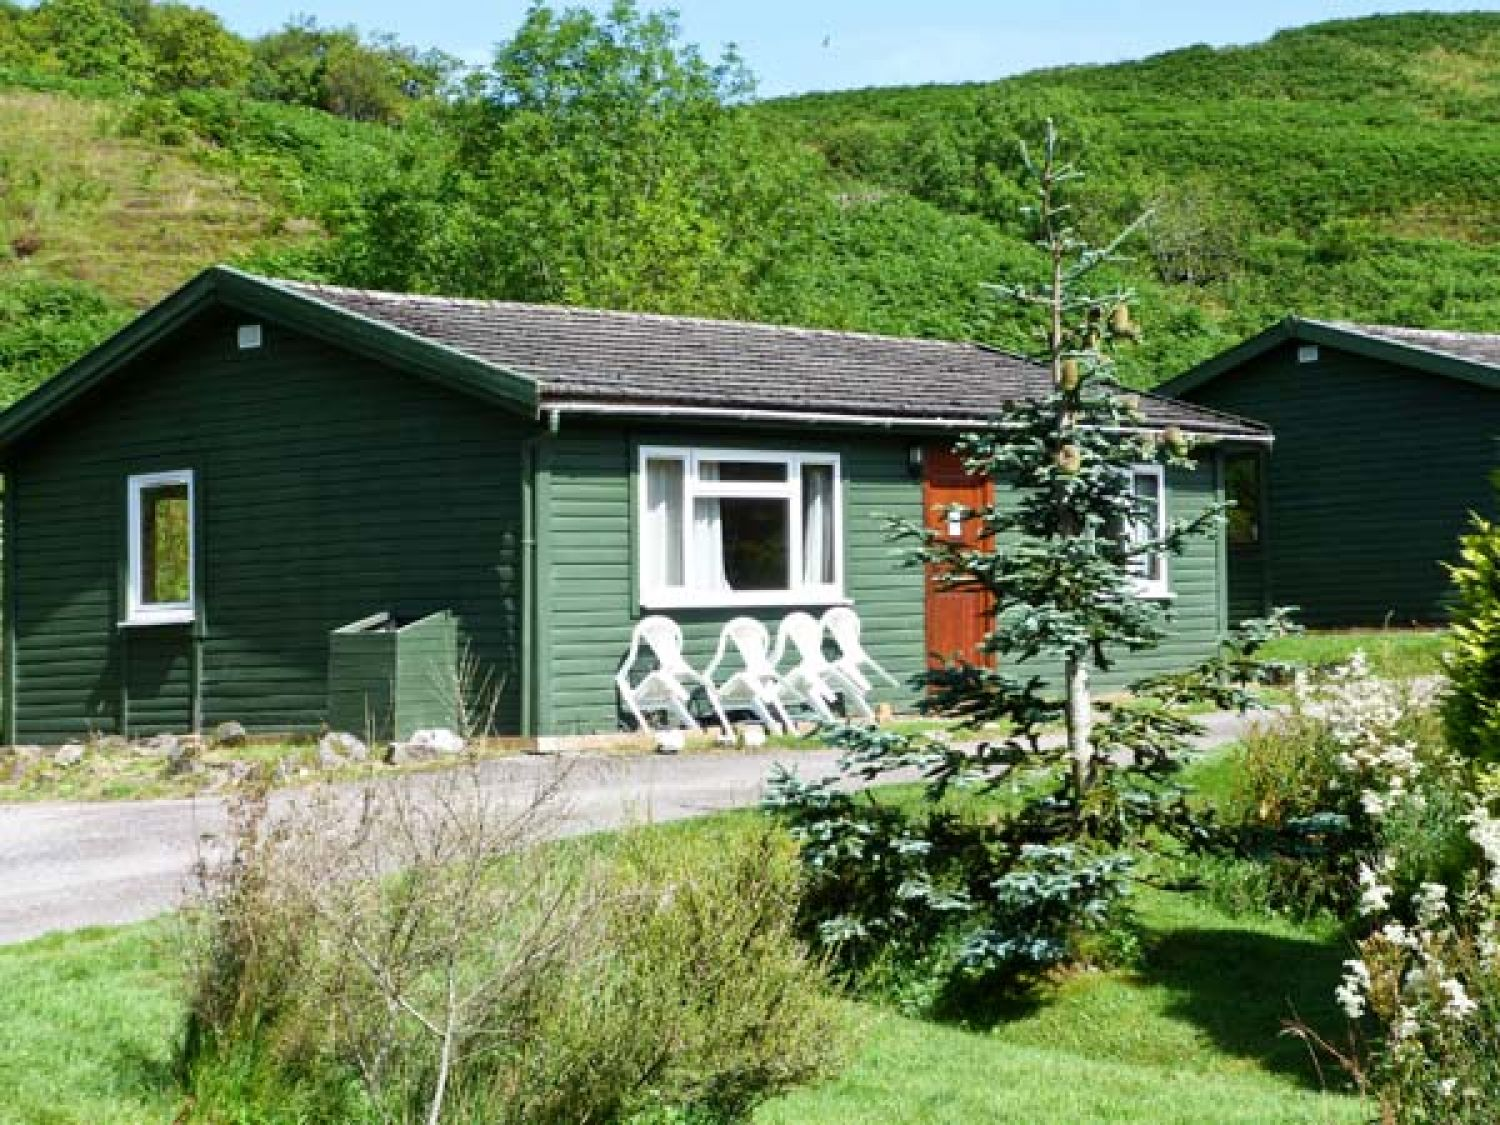 Chalet 7 Holiday Lodges in Argyll